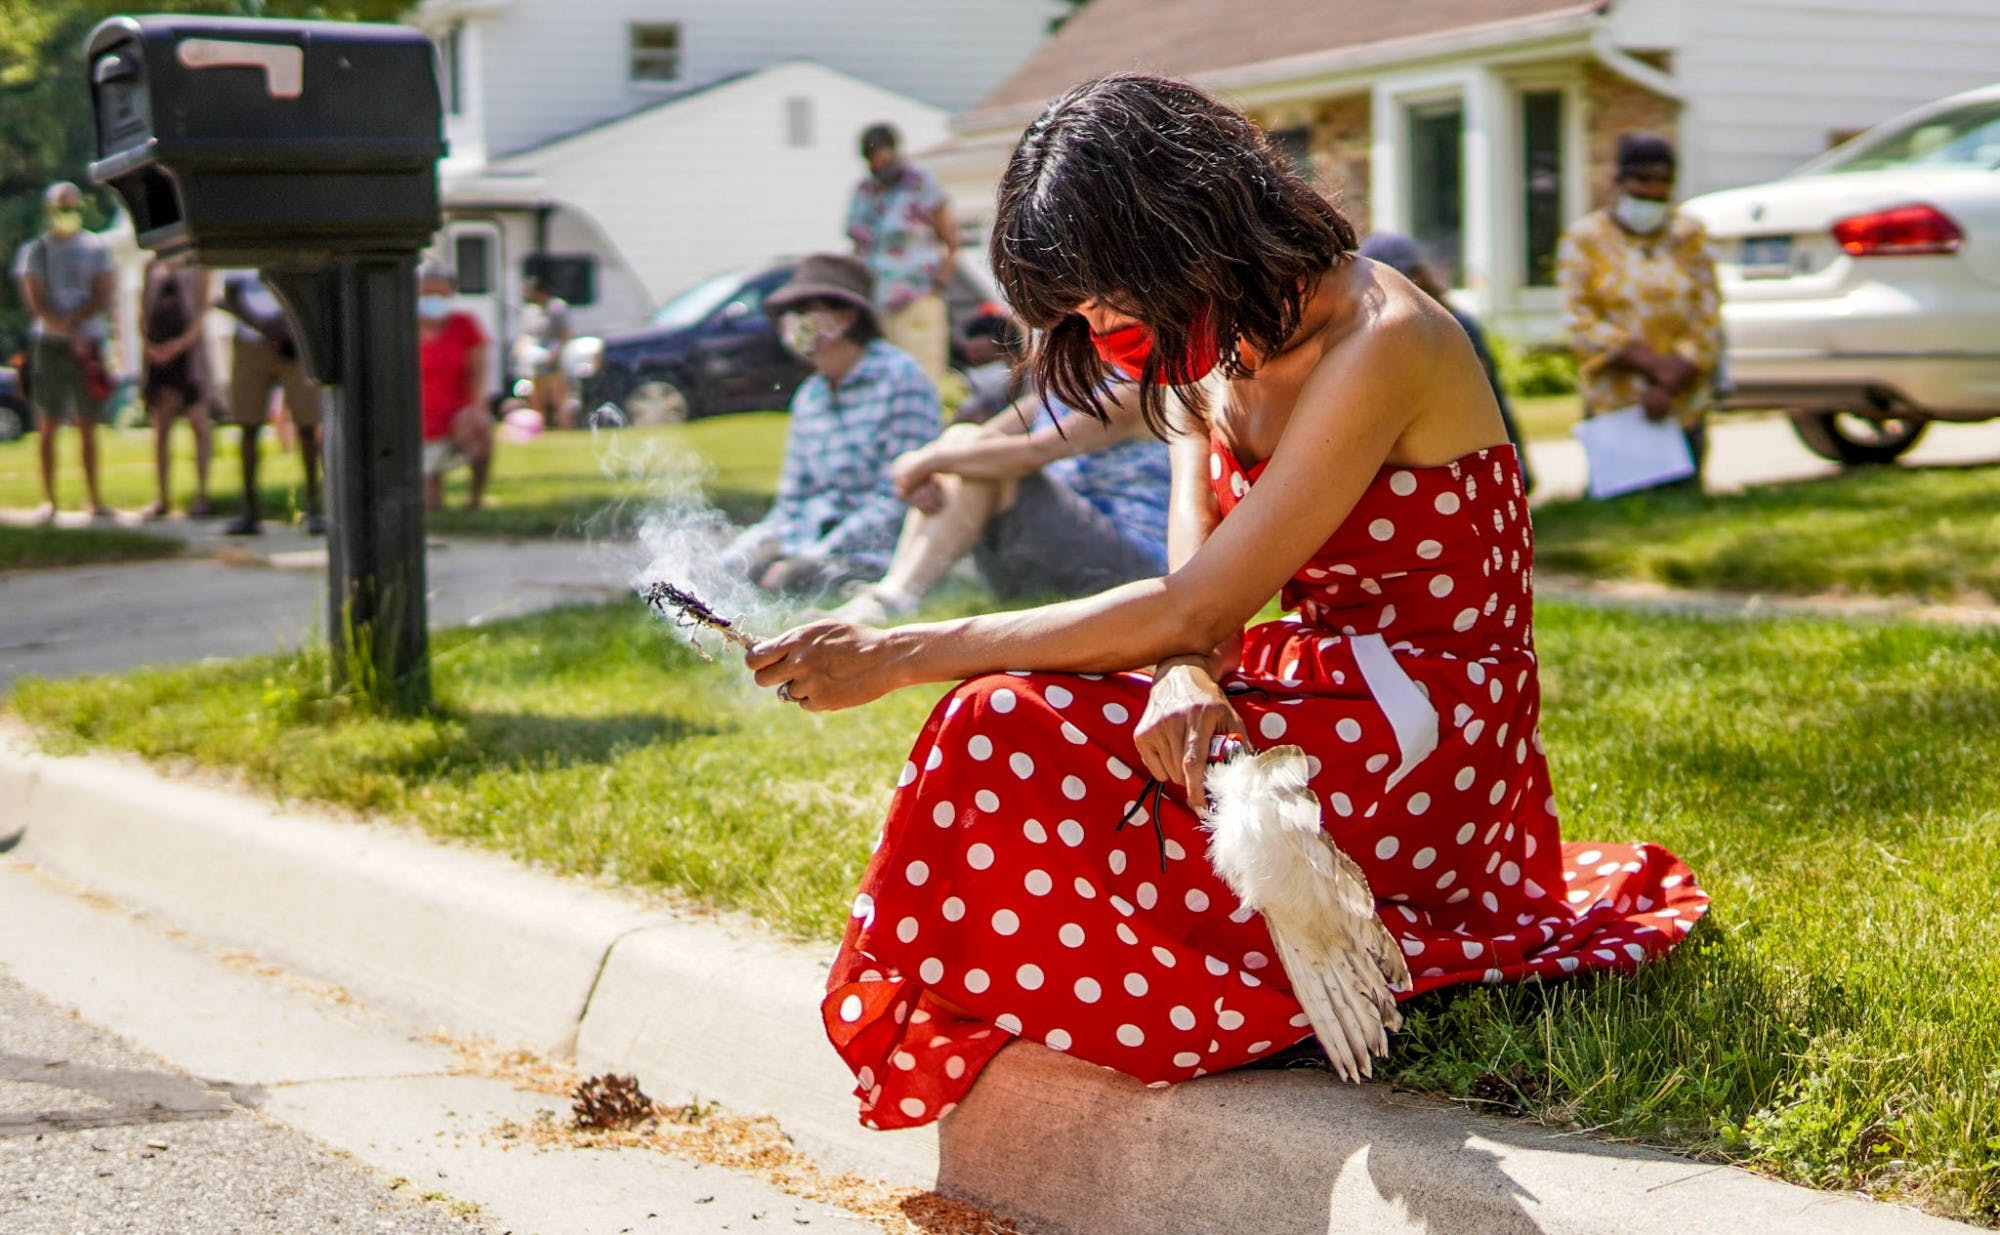 A person wearing a red polka dot dress and a face mask holds sage while sitting on a street curb.